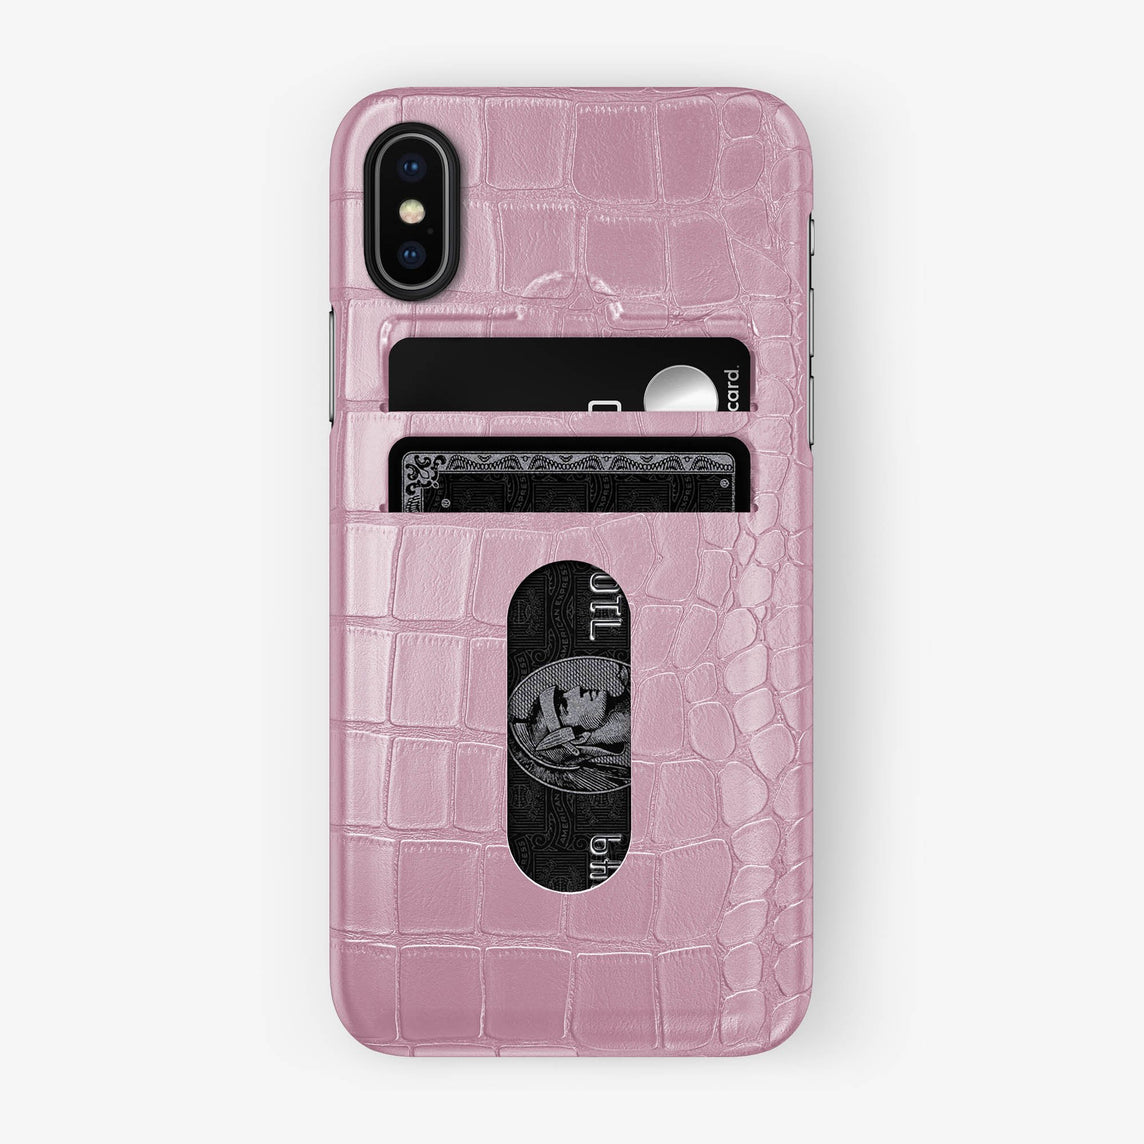 Alligator Card Holder Case iPhone Xs | Pink - Black with-personalization